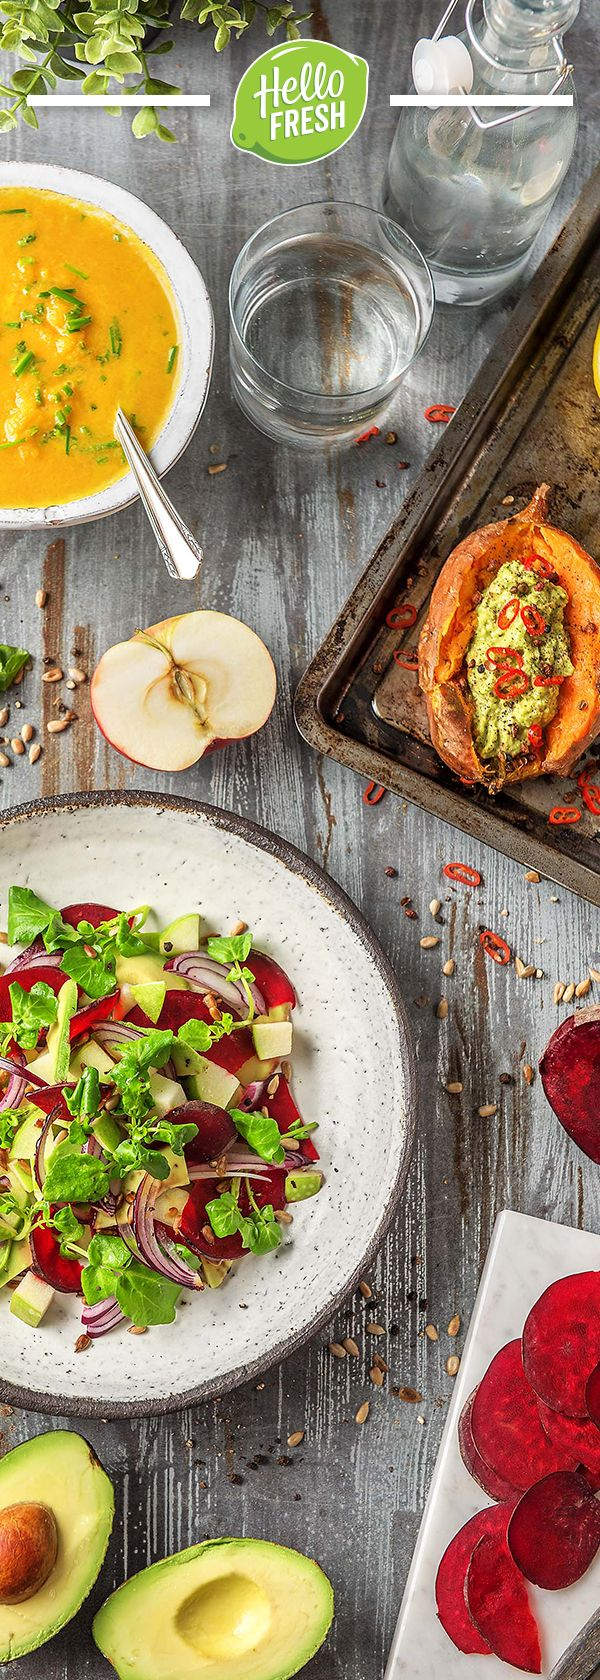 Need to restart after the festive period? Get back into a healthy routine with HelloFresh! ➜ Use code HELLOPIN40 at checkout to get £20 off both your first and second box! End date: 03/30